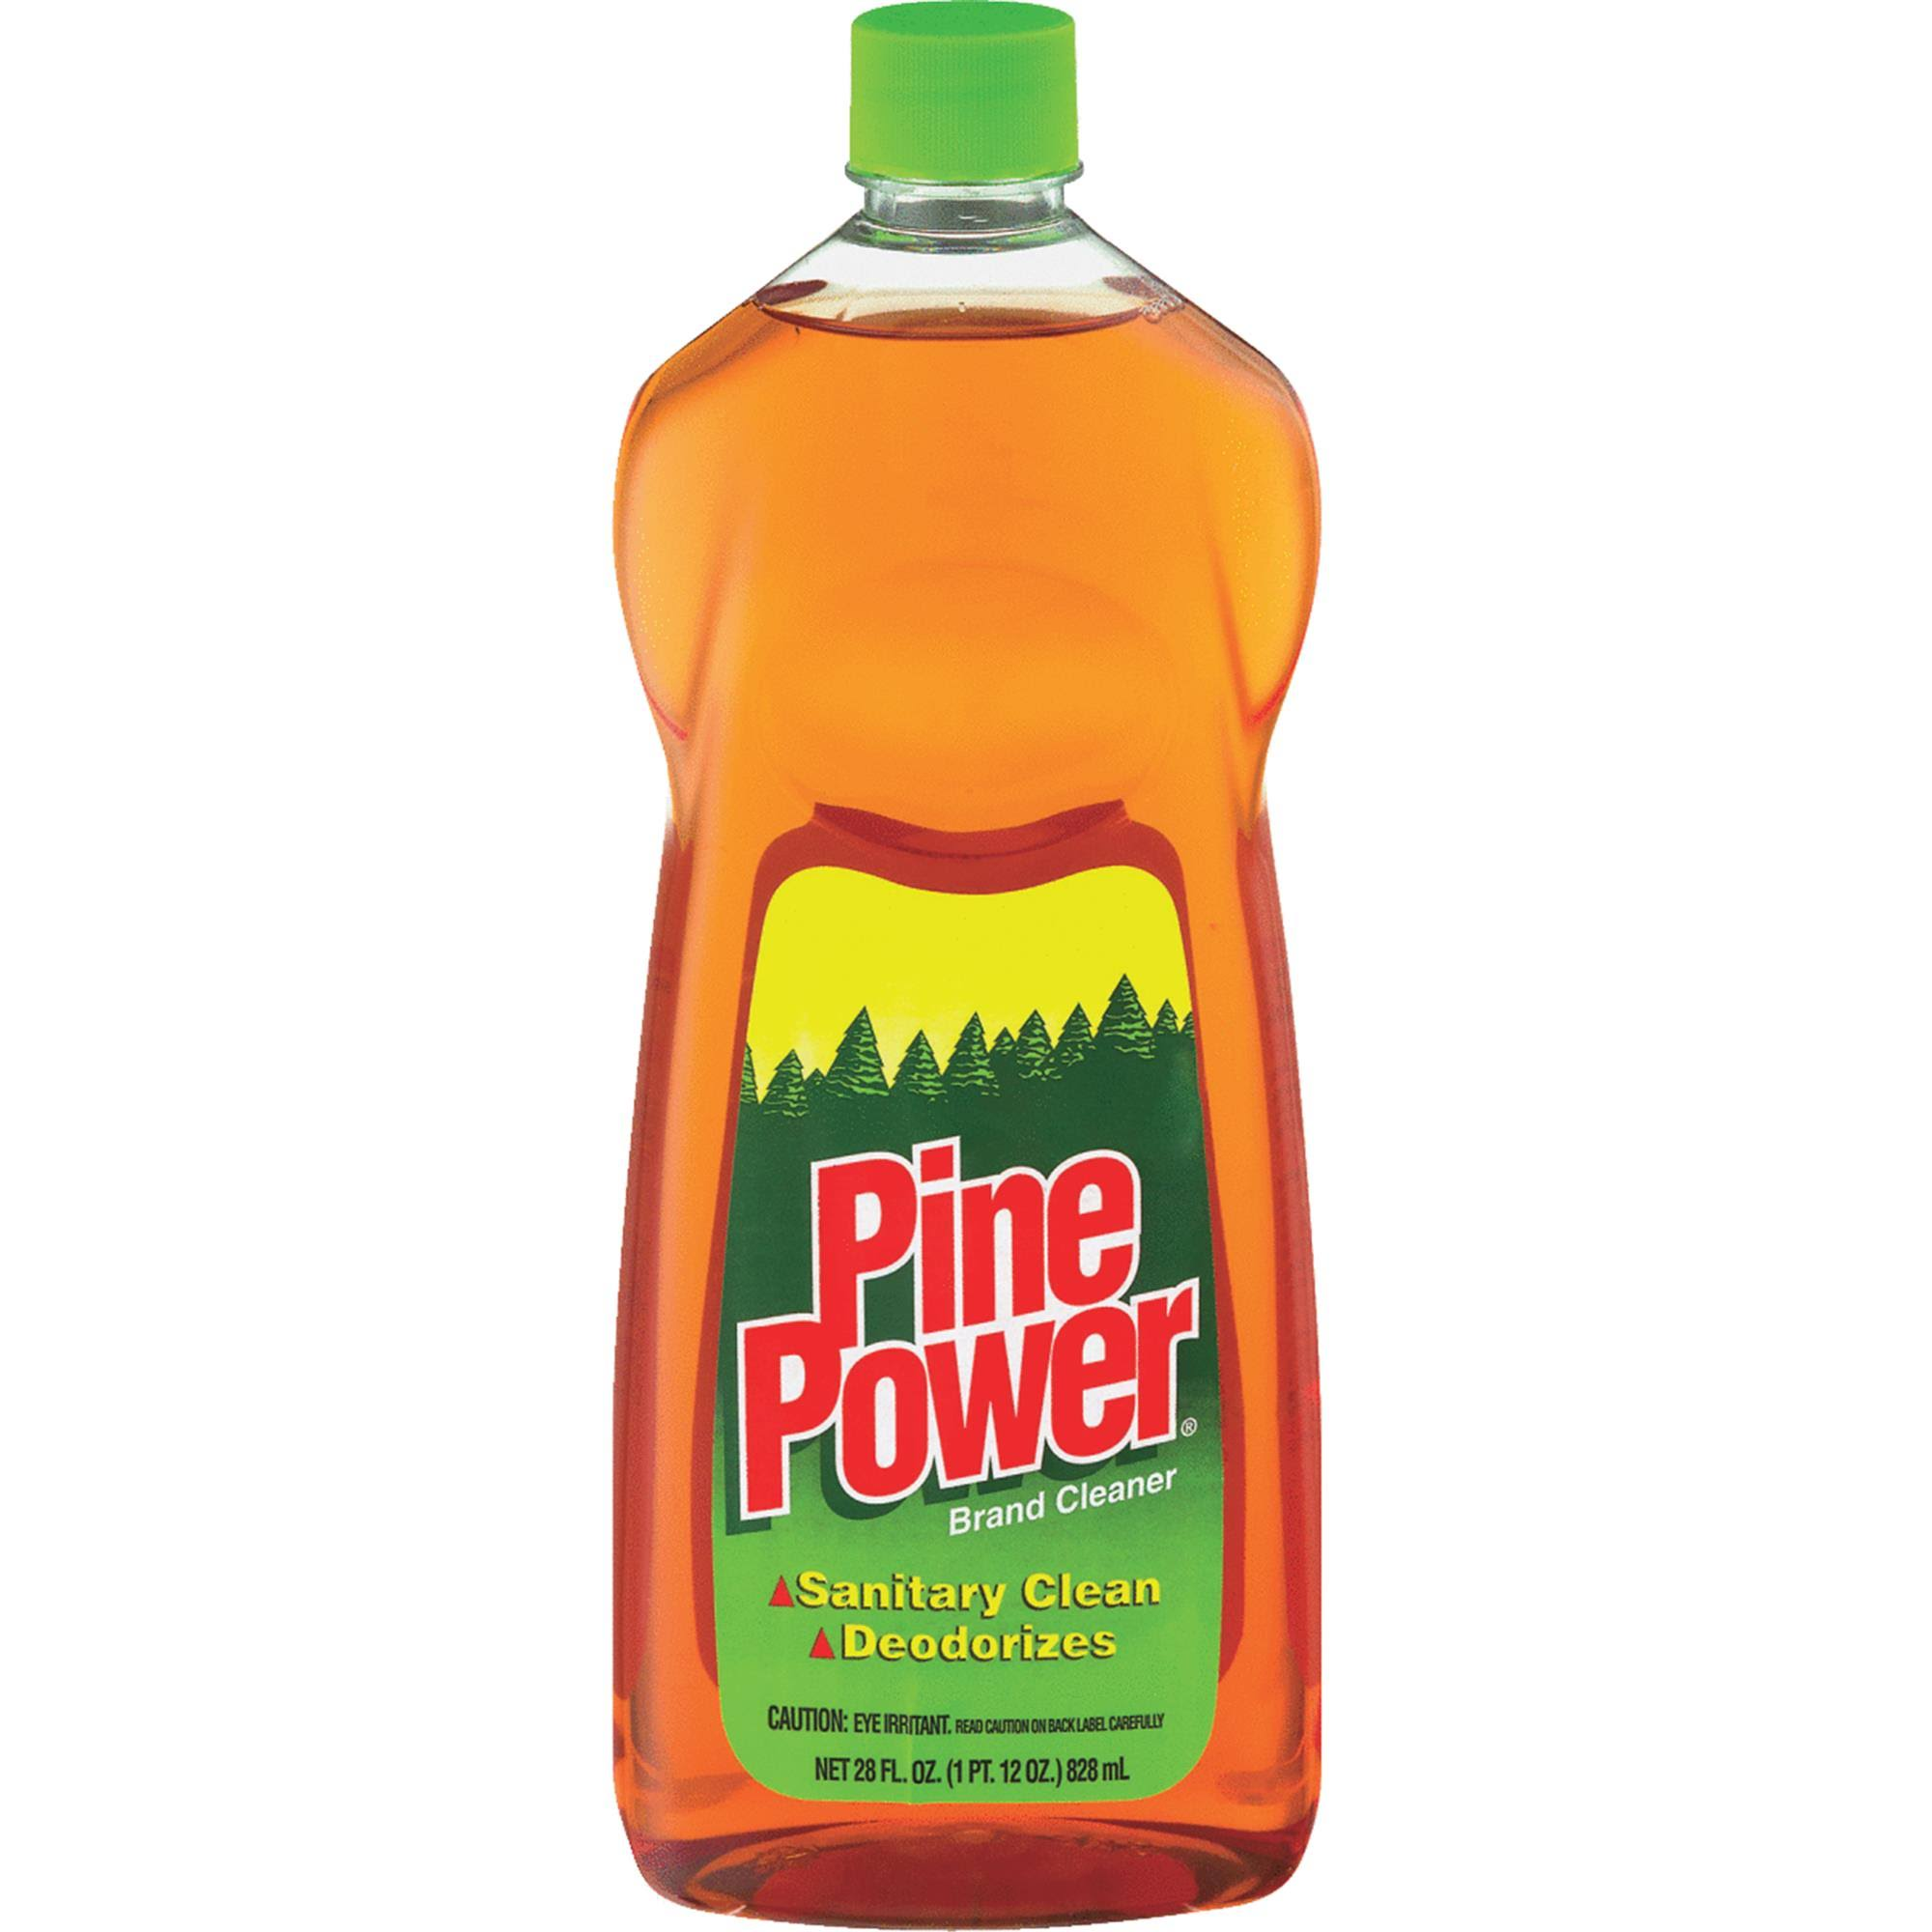 Cr Brands Pine Power Cleaner - 28oz